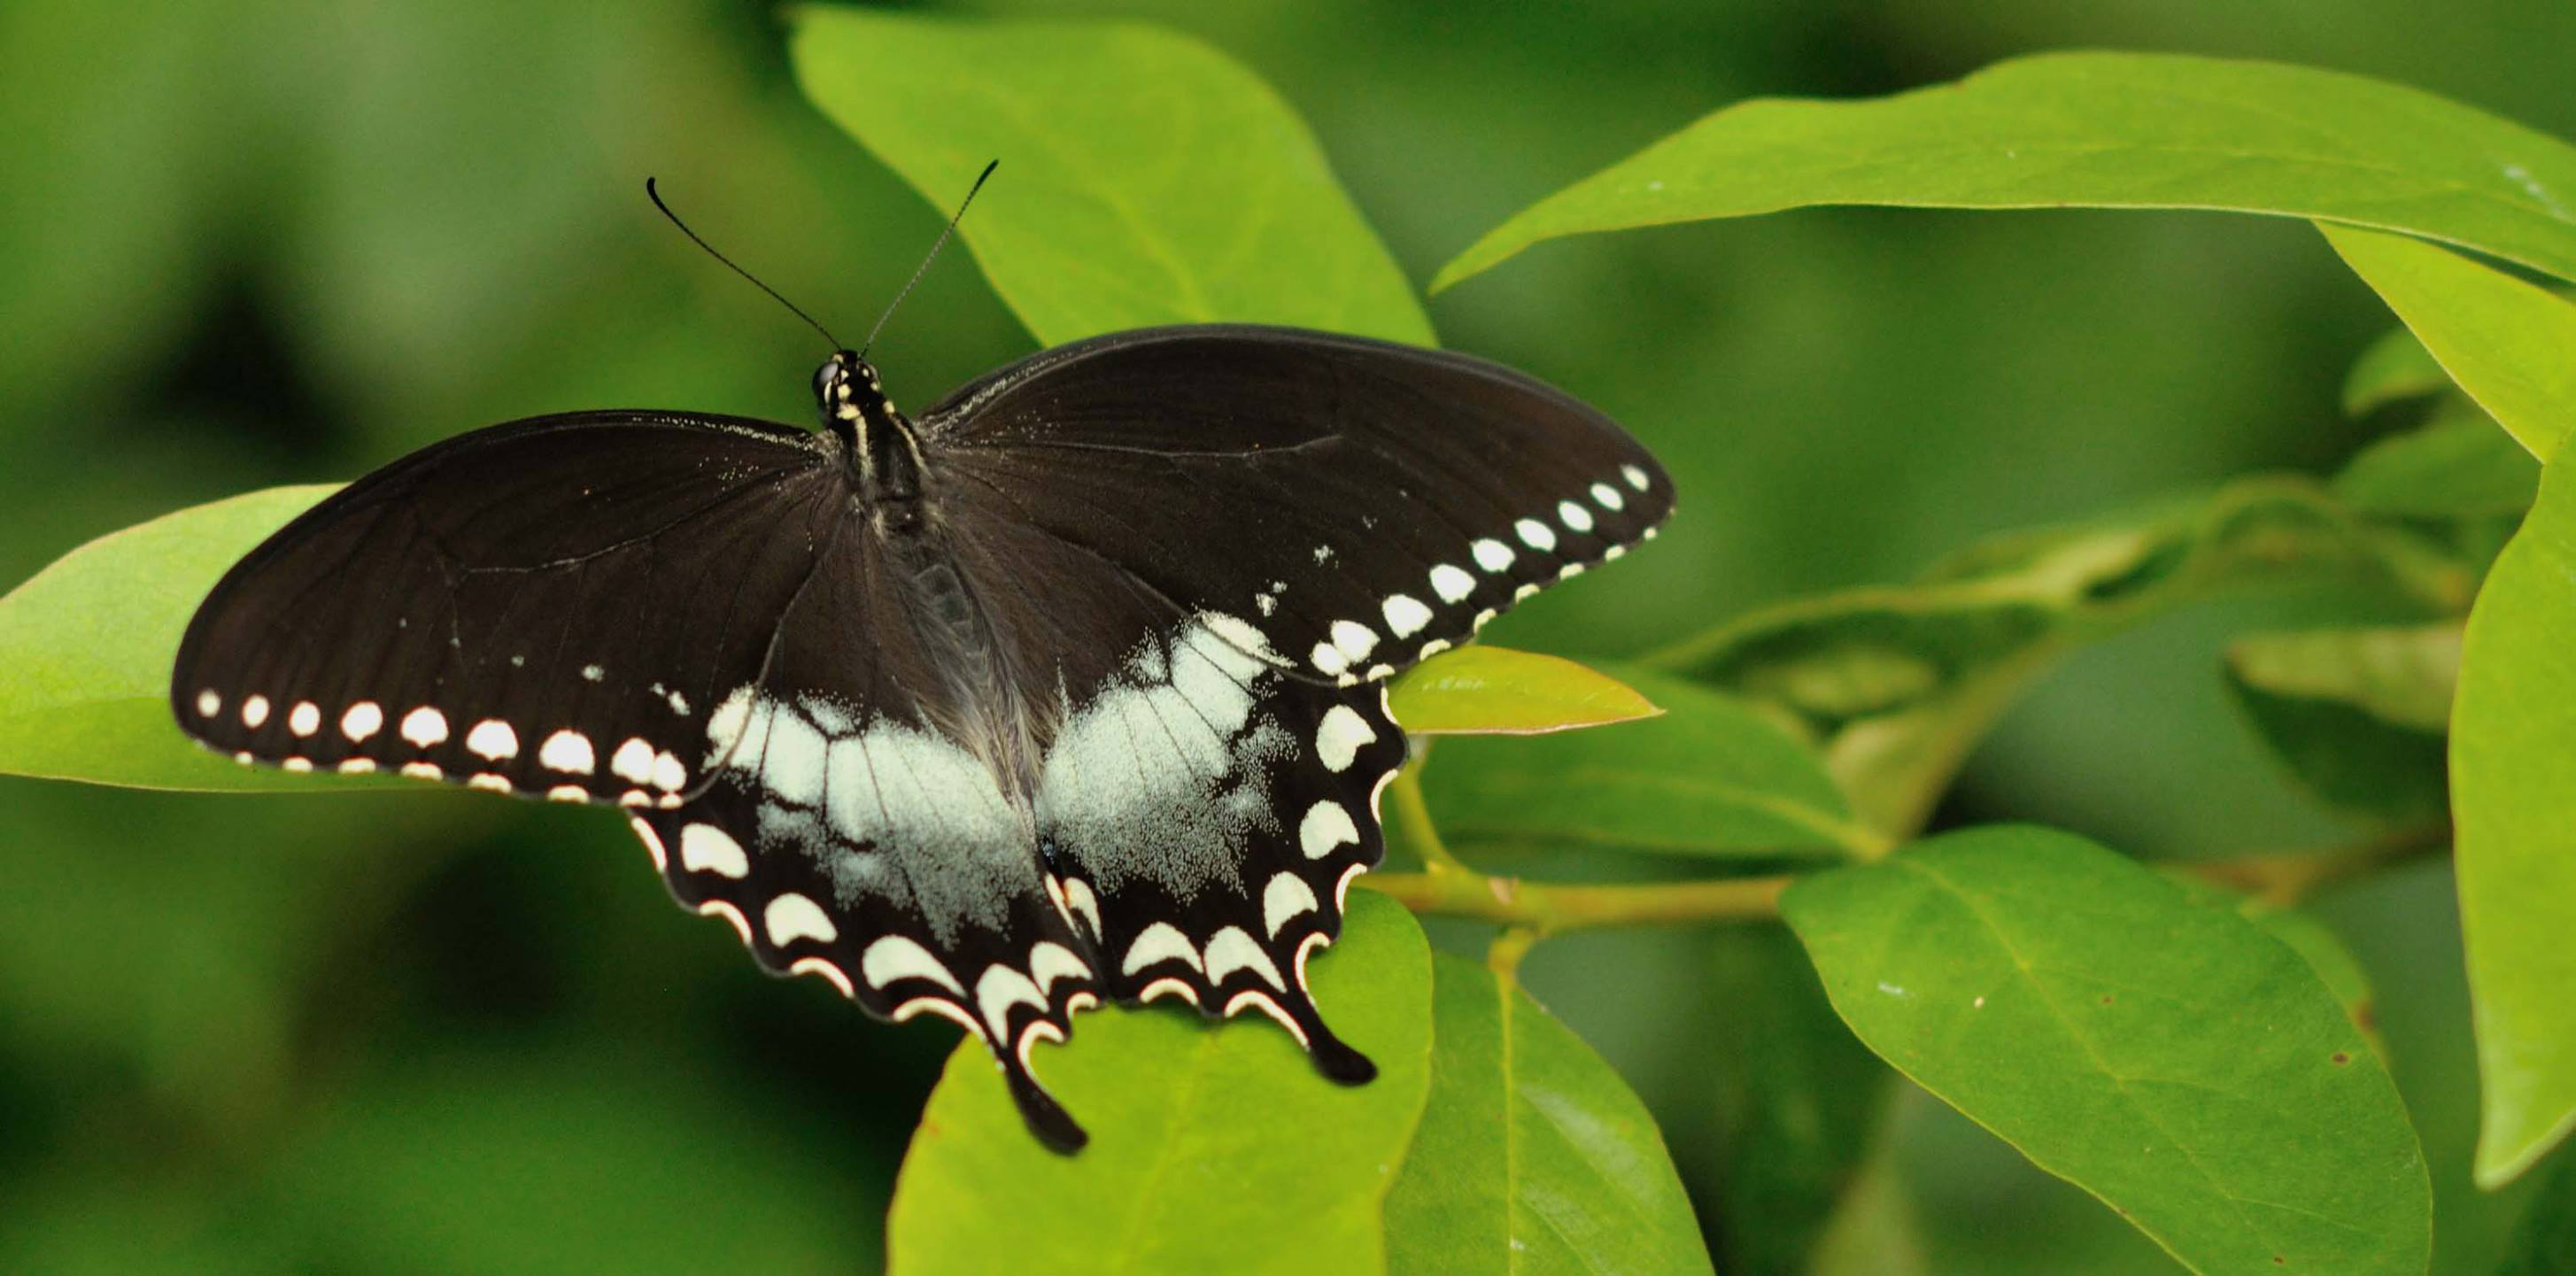 Spicebush Swallowtail - papilio troilus - black colored butterfly species